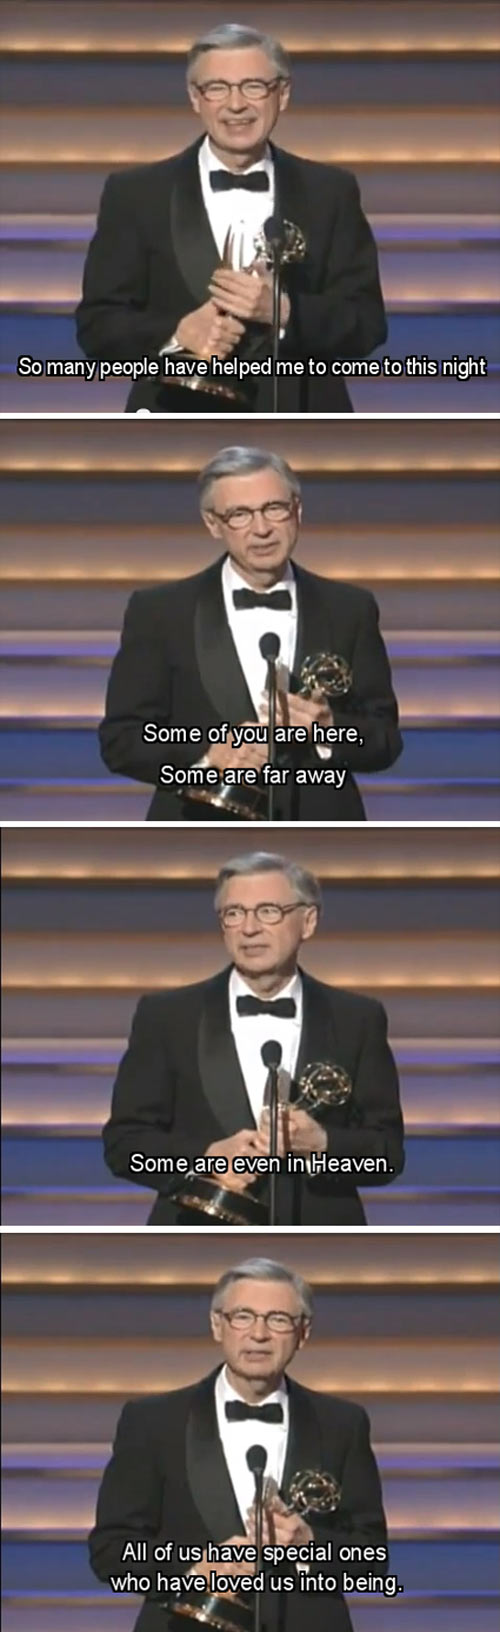 cool-Mr-Rogers-acceptance-speech-loved-ones